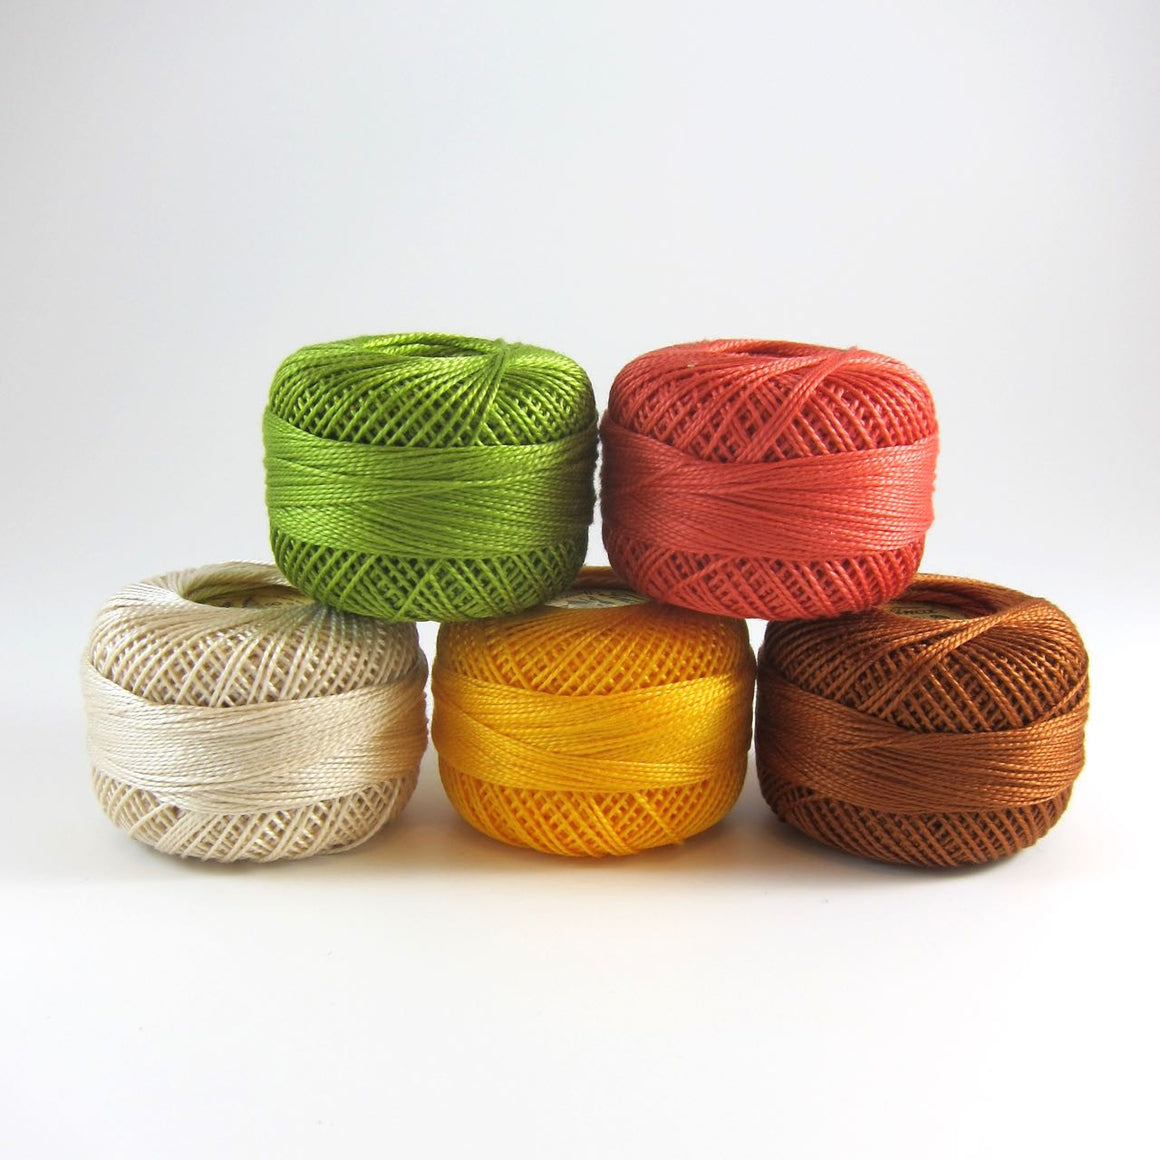 Sherbert Pearl Cotton Thread Set (5 colors)